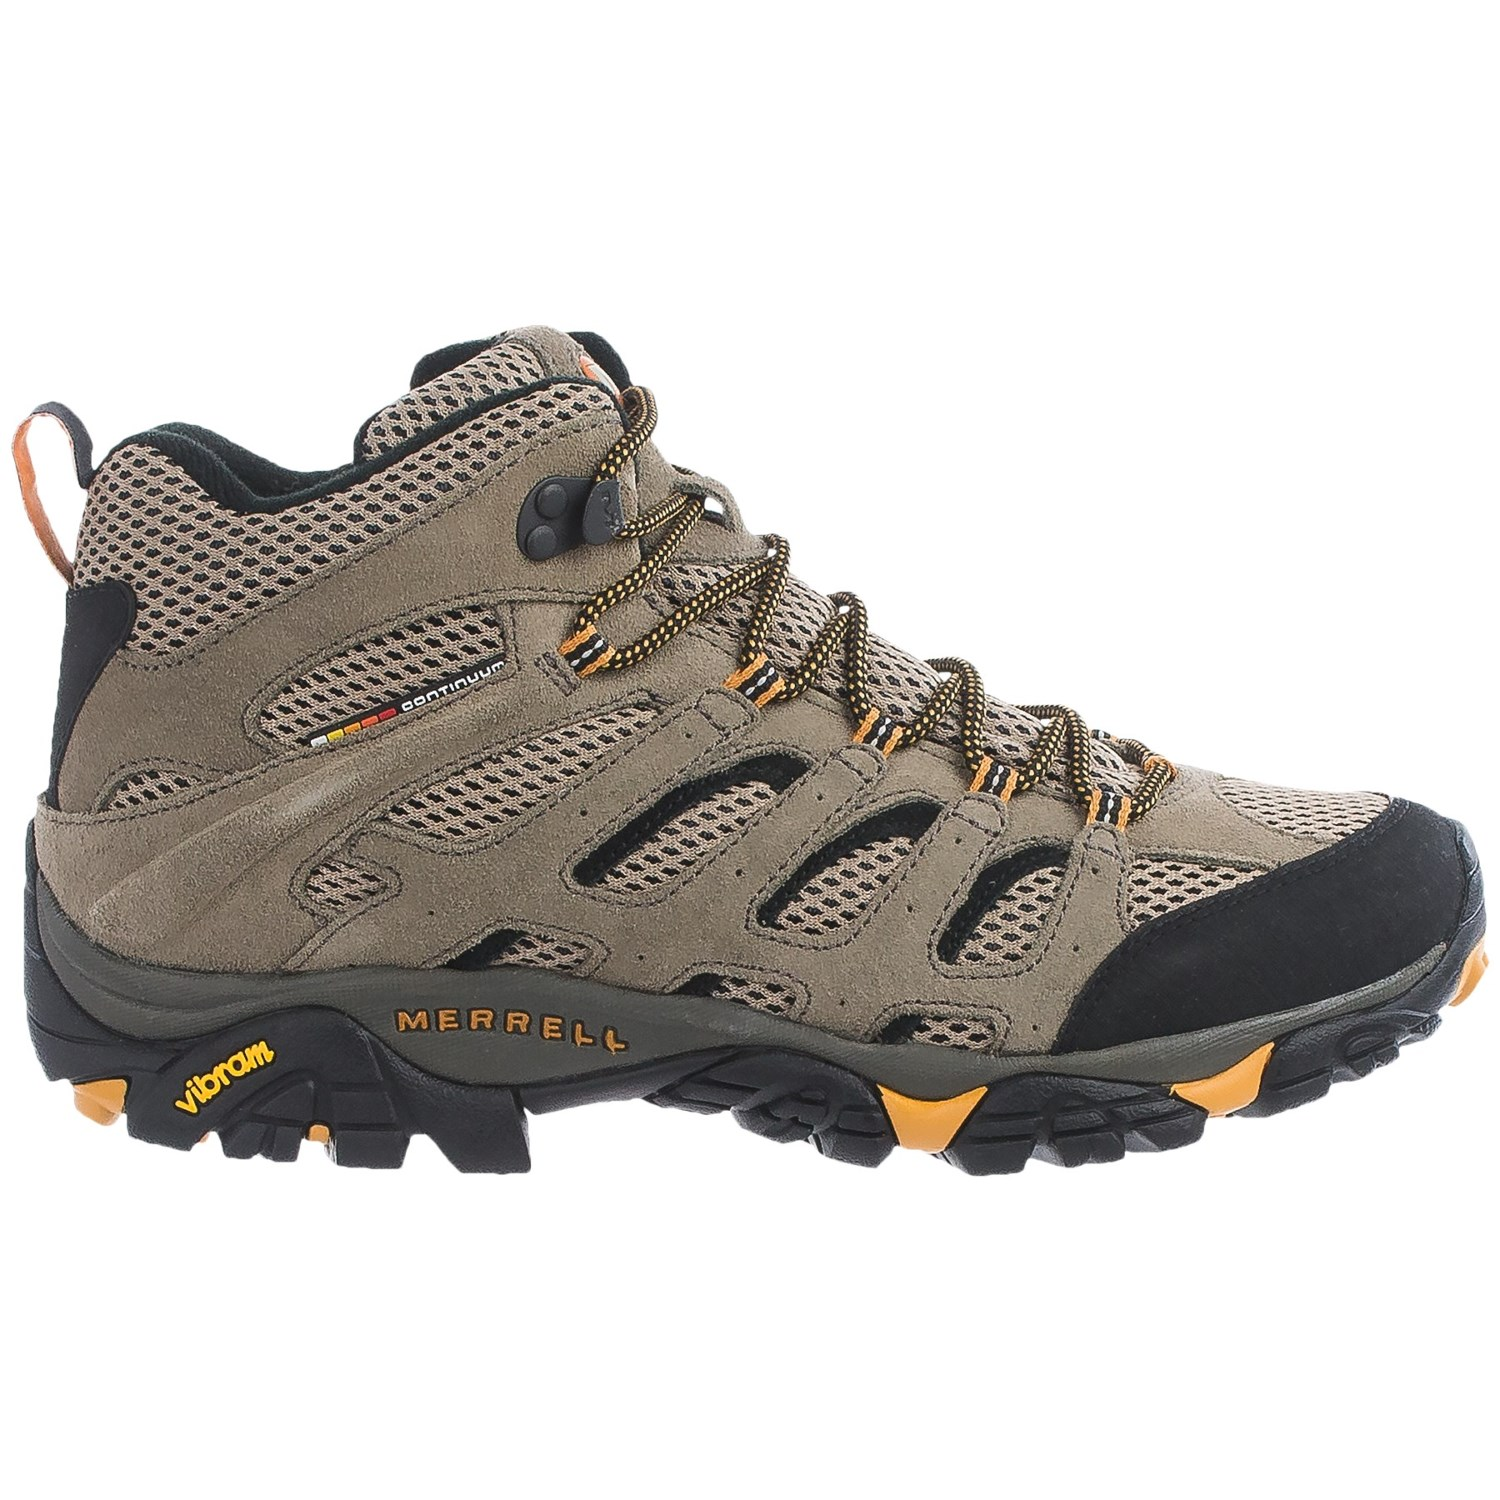 moab guys Find great deals on ebay for mens merrell moab and mens merrell moab 11 shop with confidence.